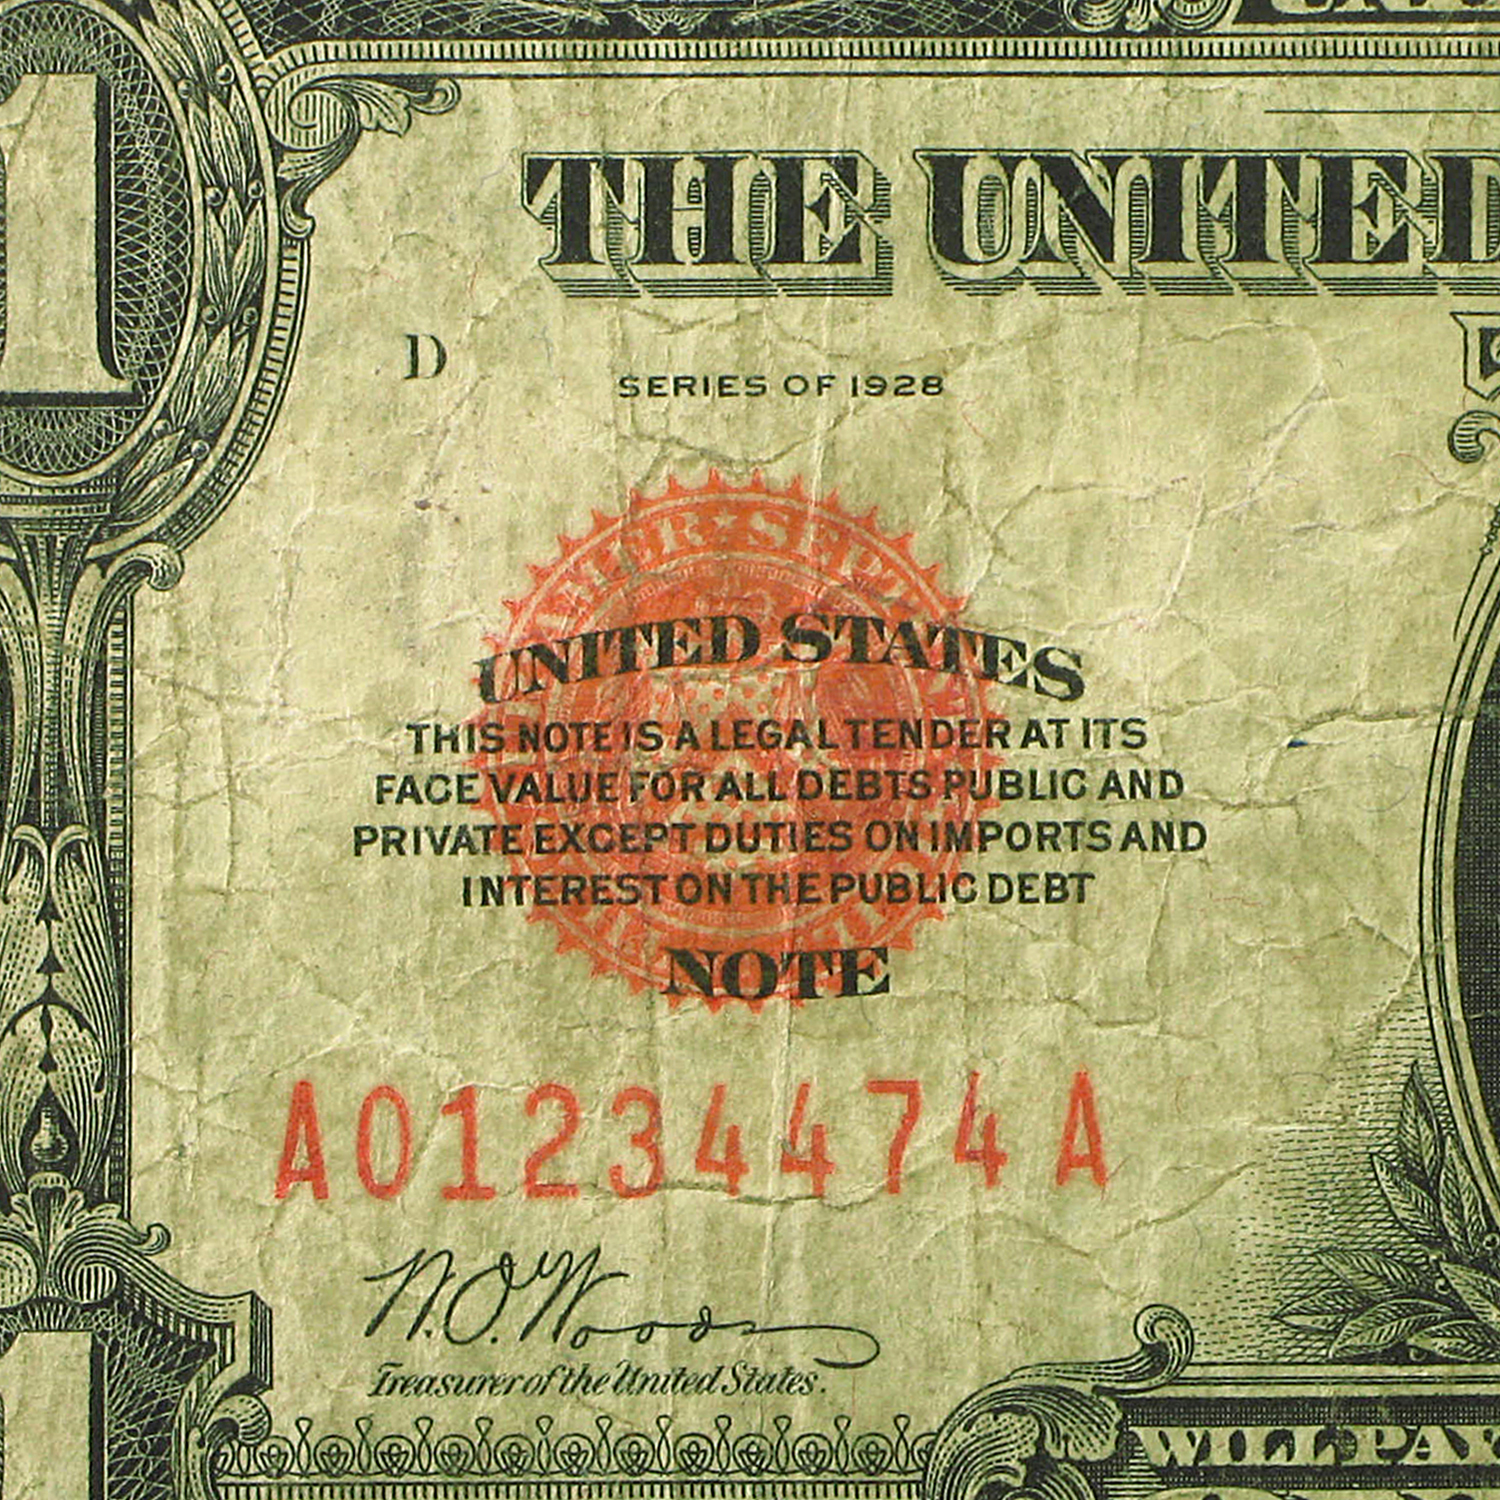 1928 $1 U.S. Note - Legal Tender - (Very Good)